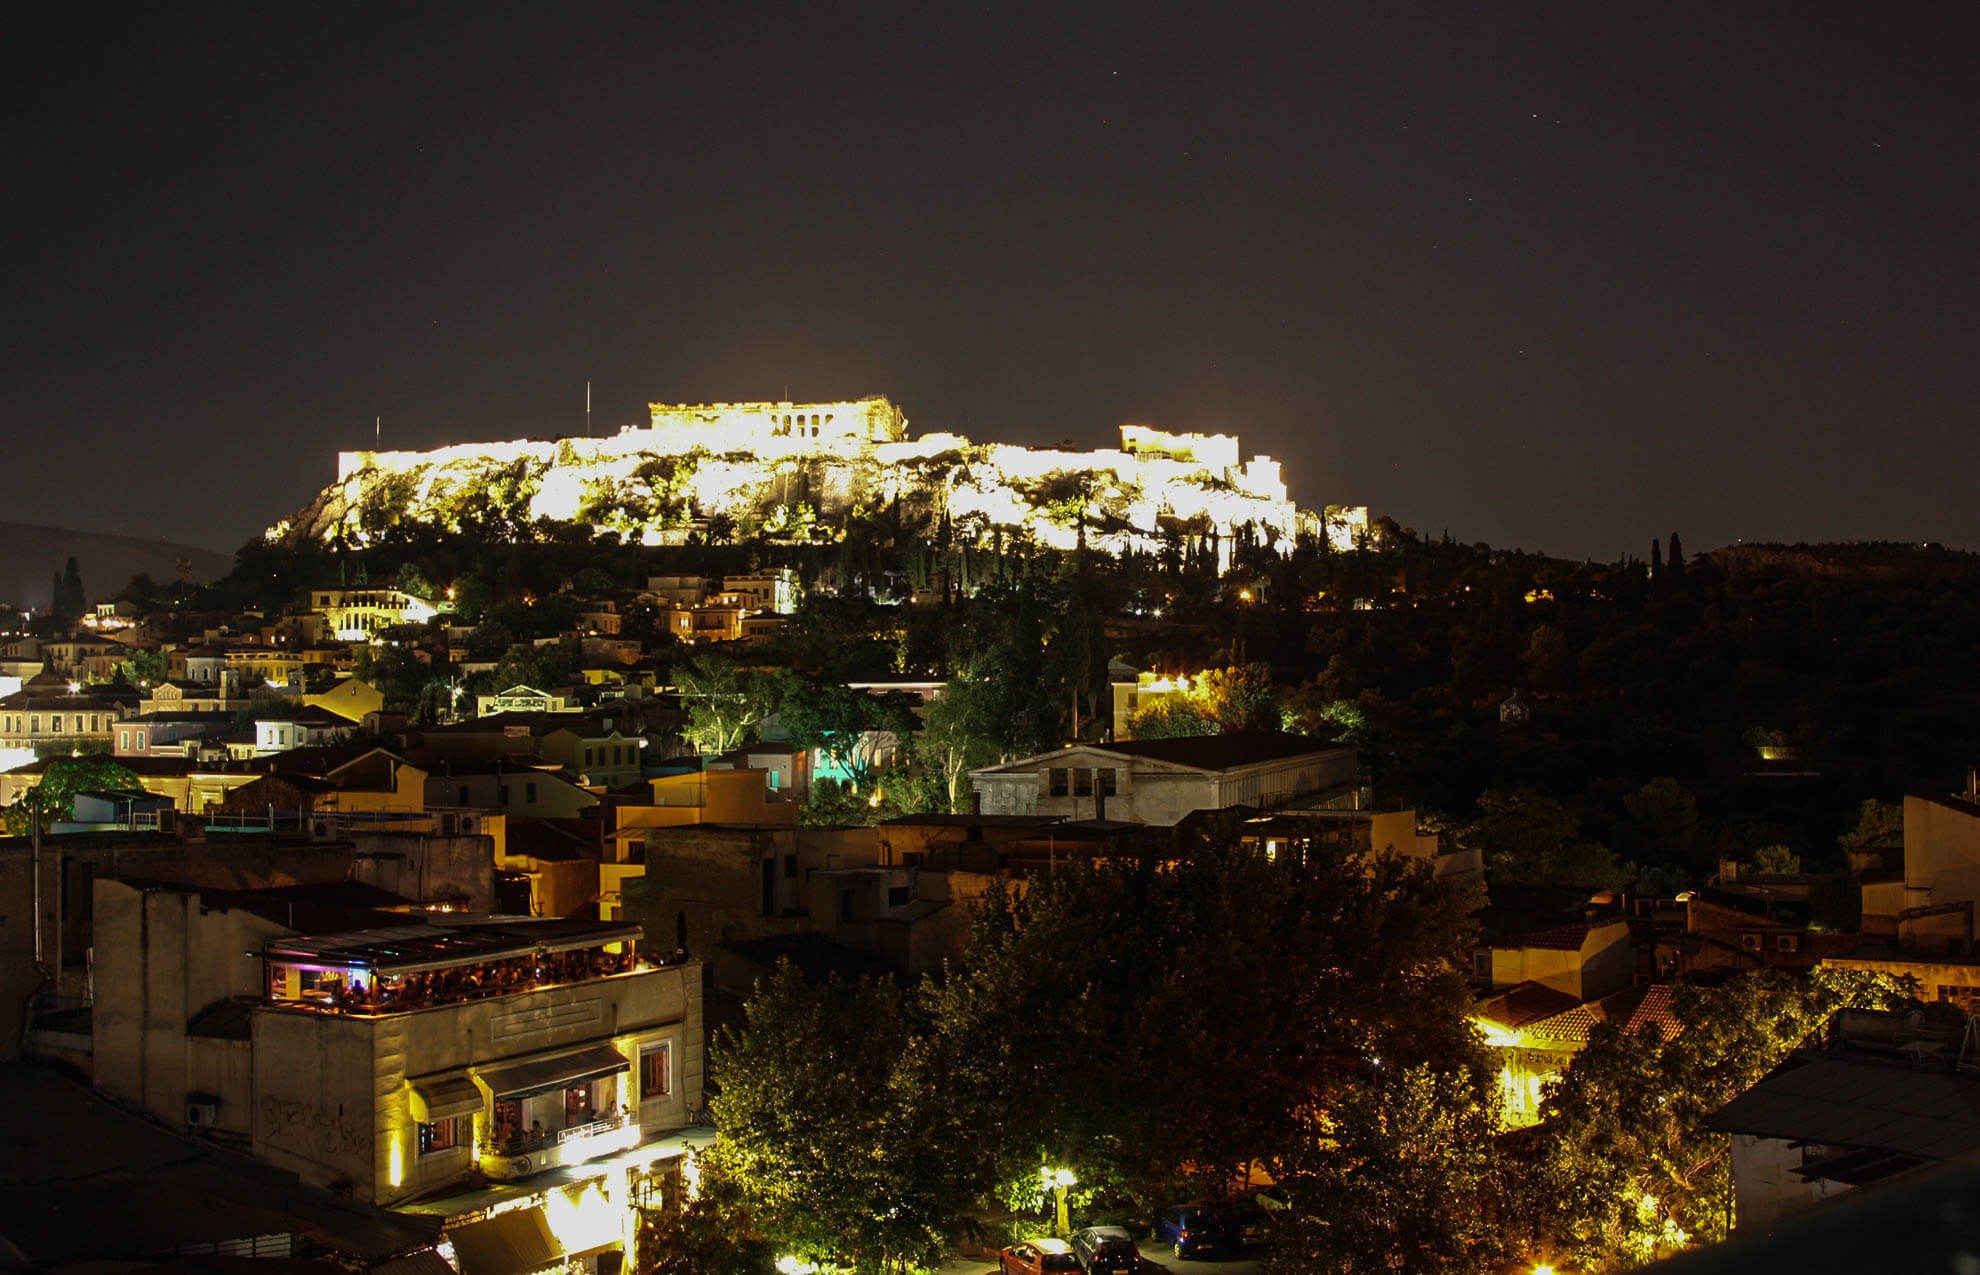 Pella Inn's Bar has an amazing night view of Acropolis.